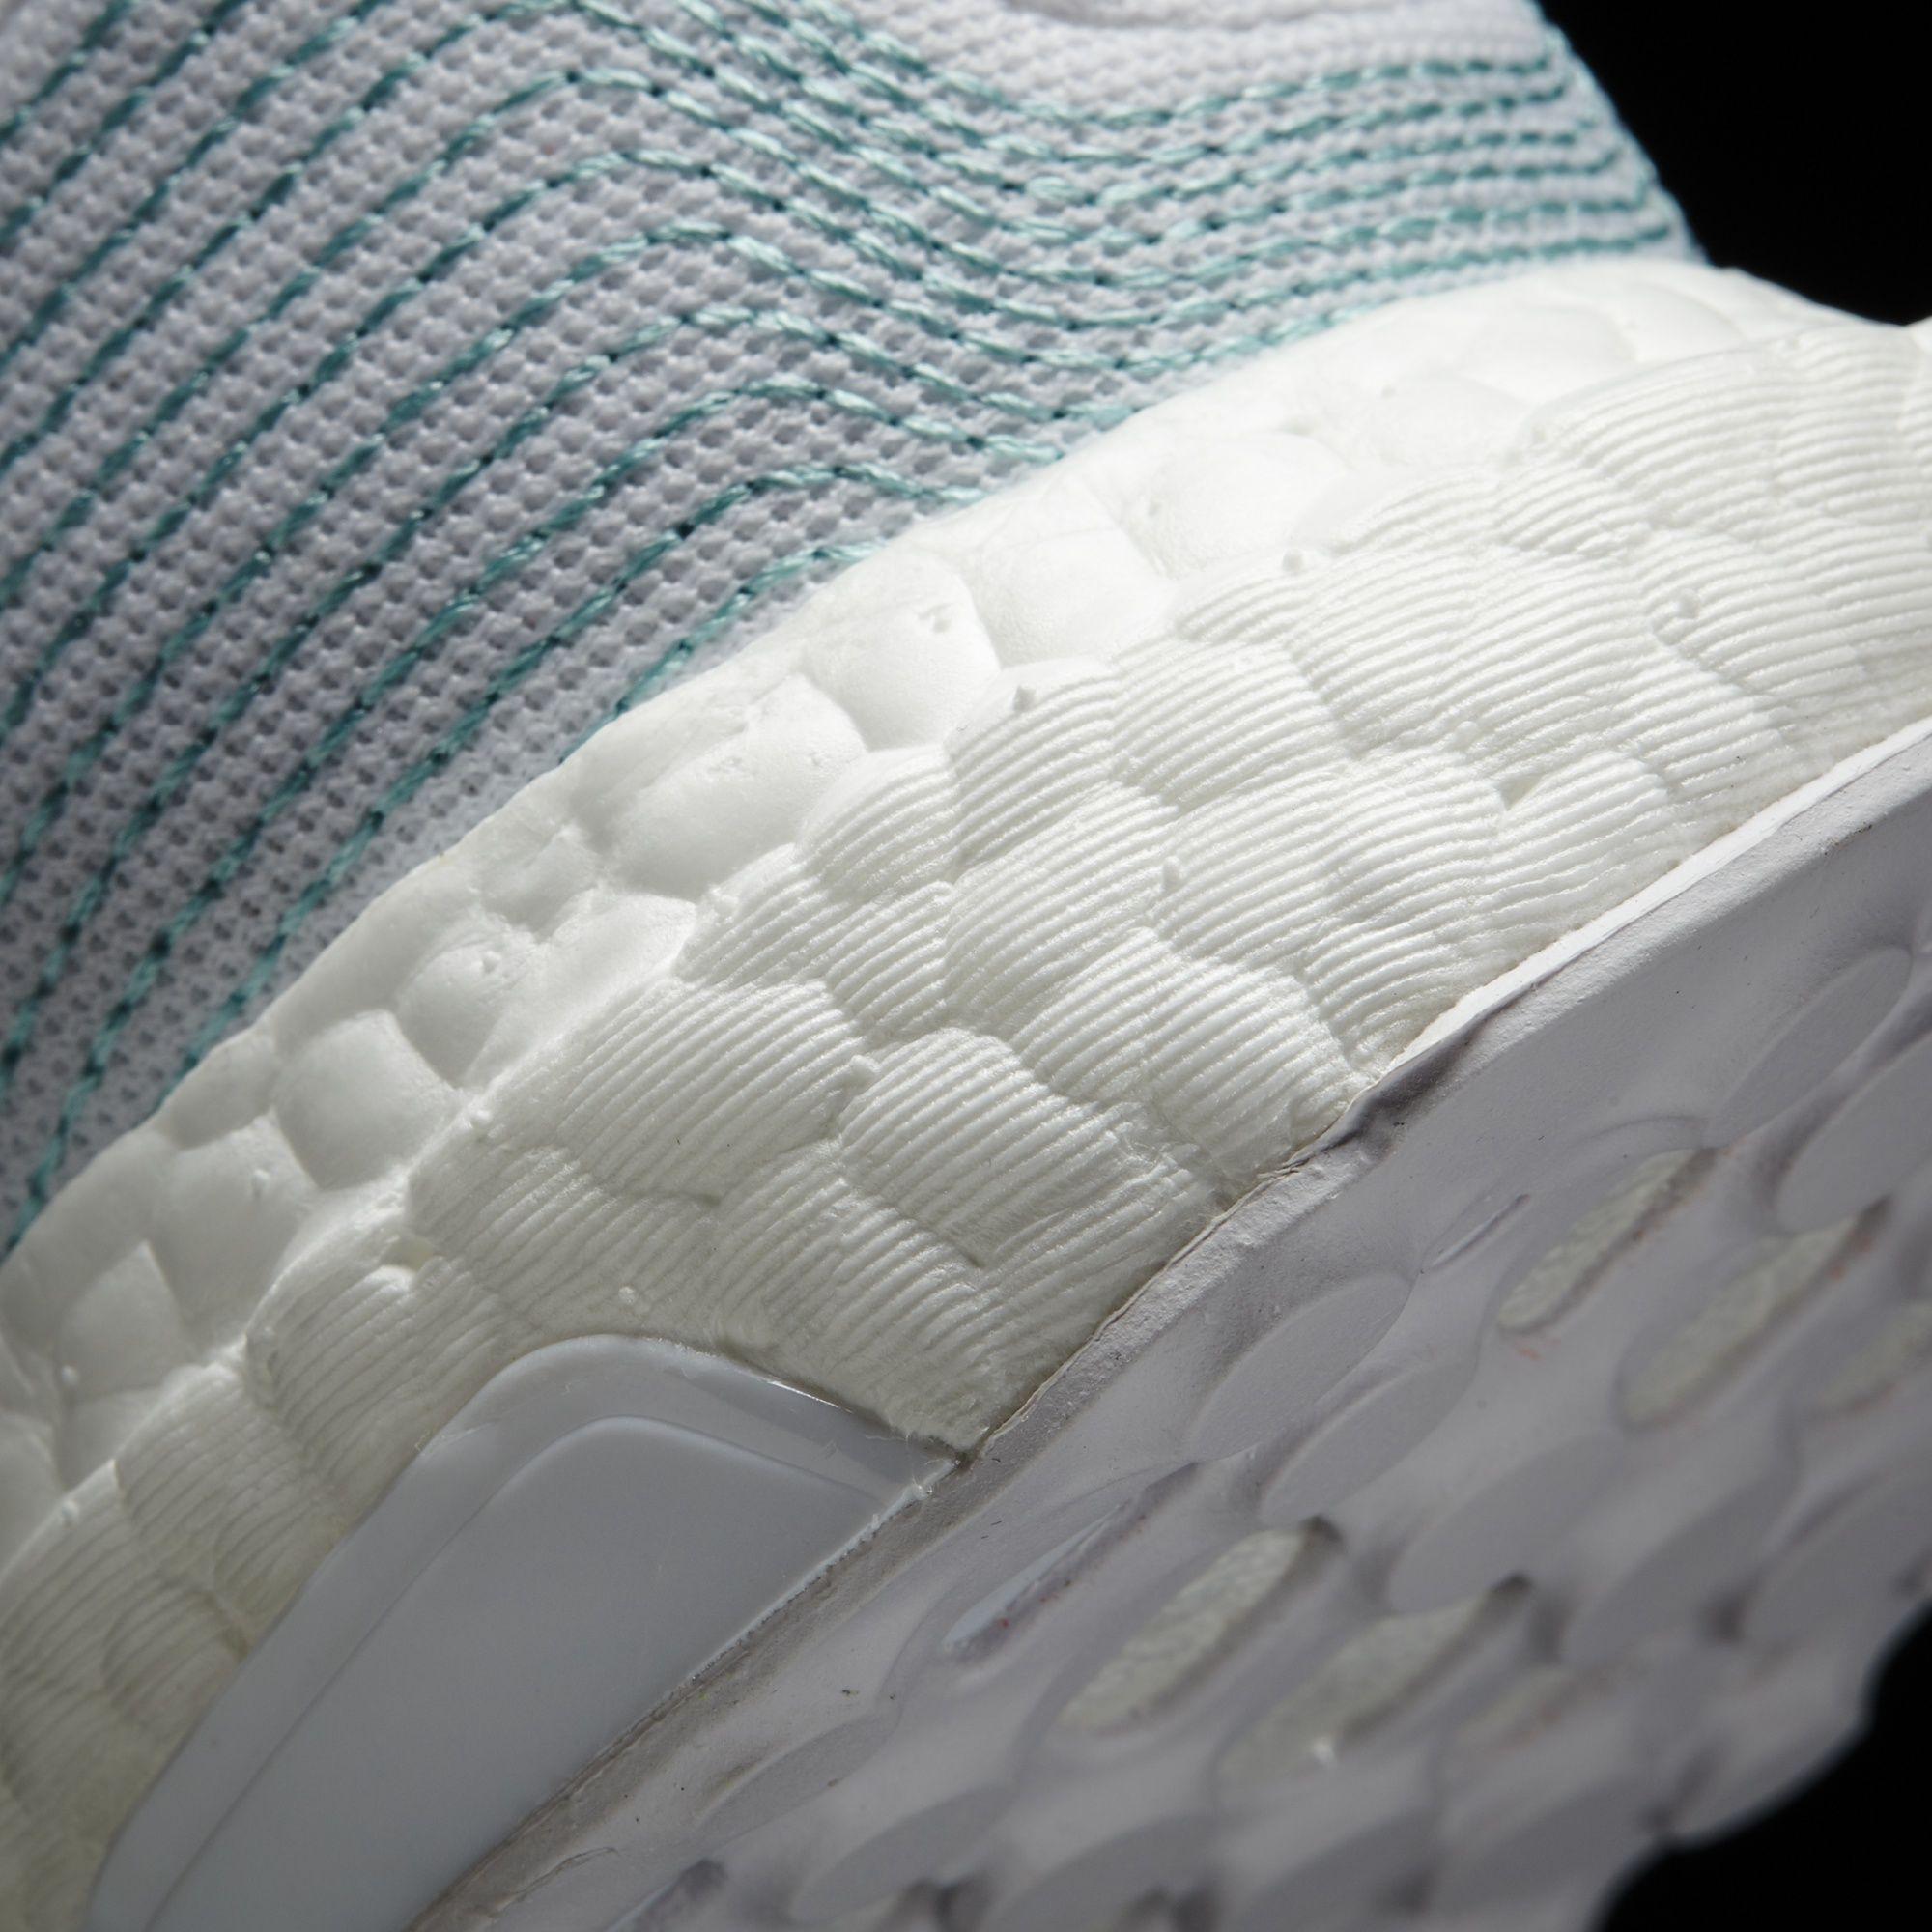 Parley Adidas Ultra Boost Uncaged Midsole Detail